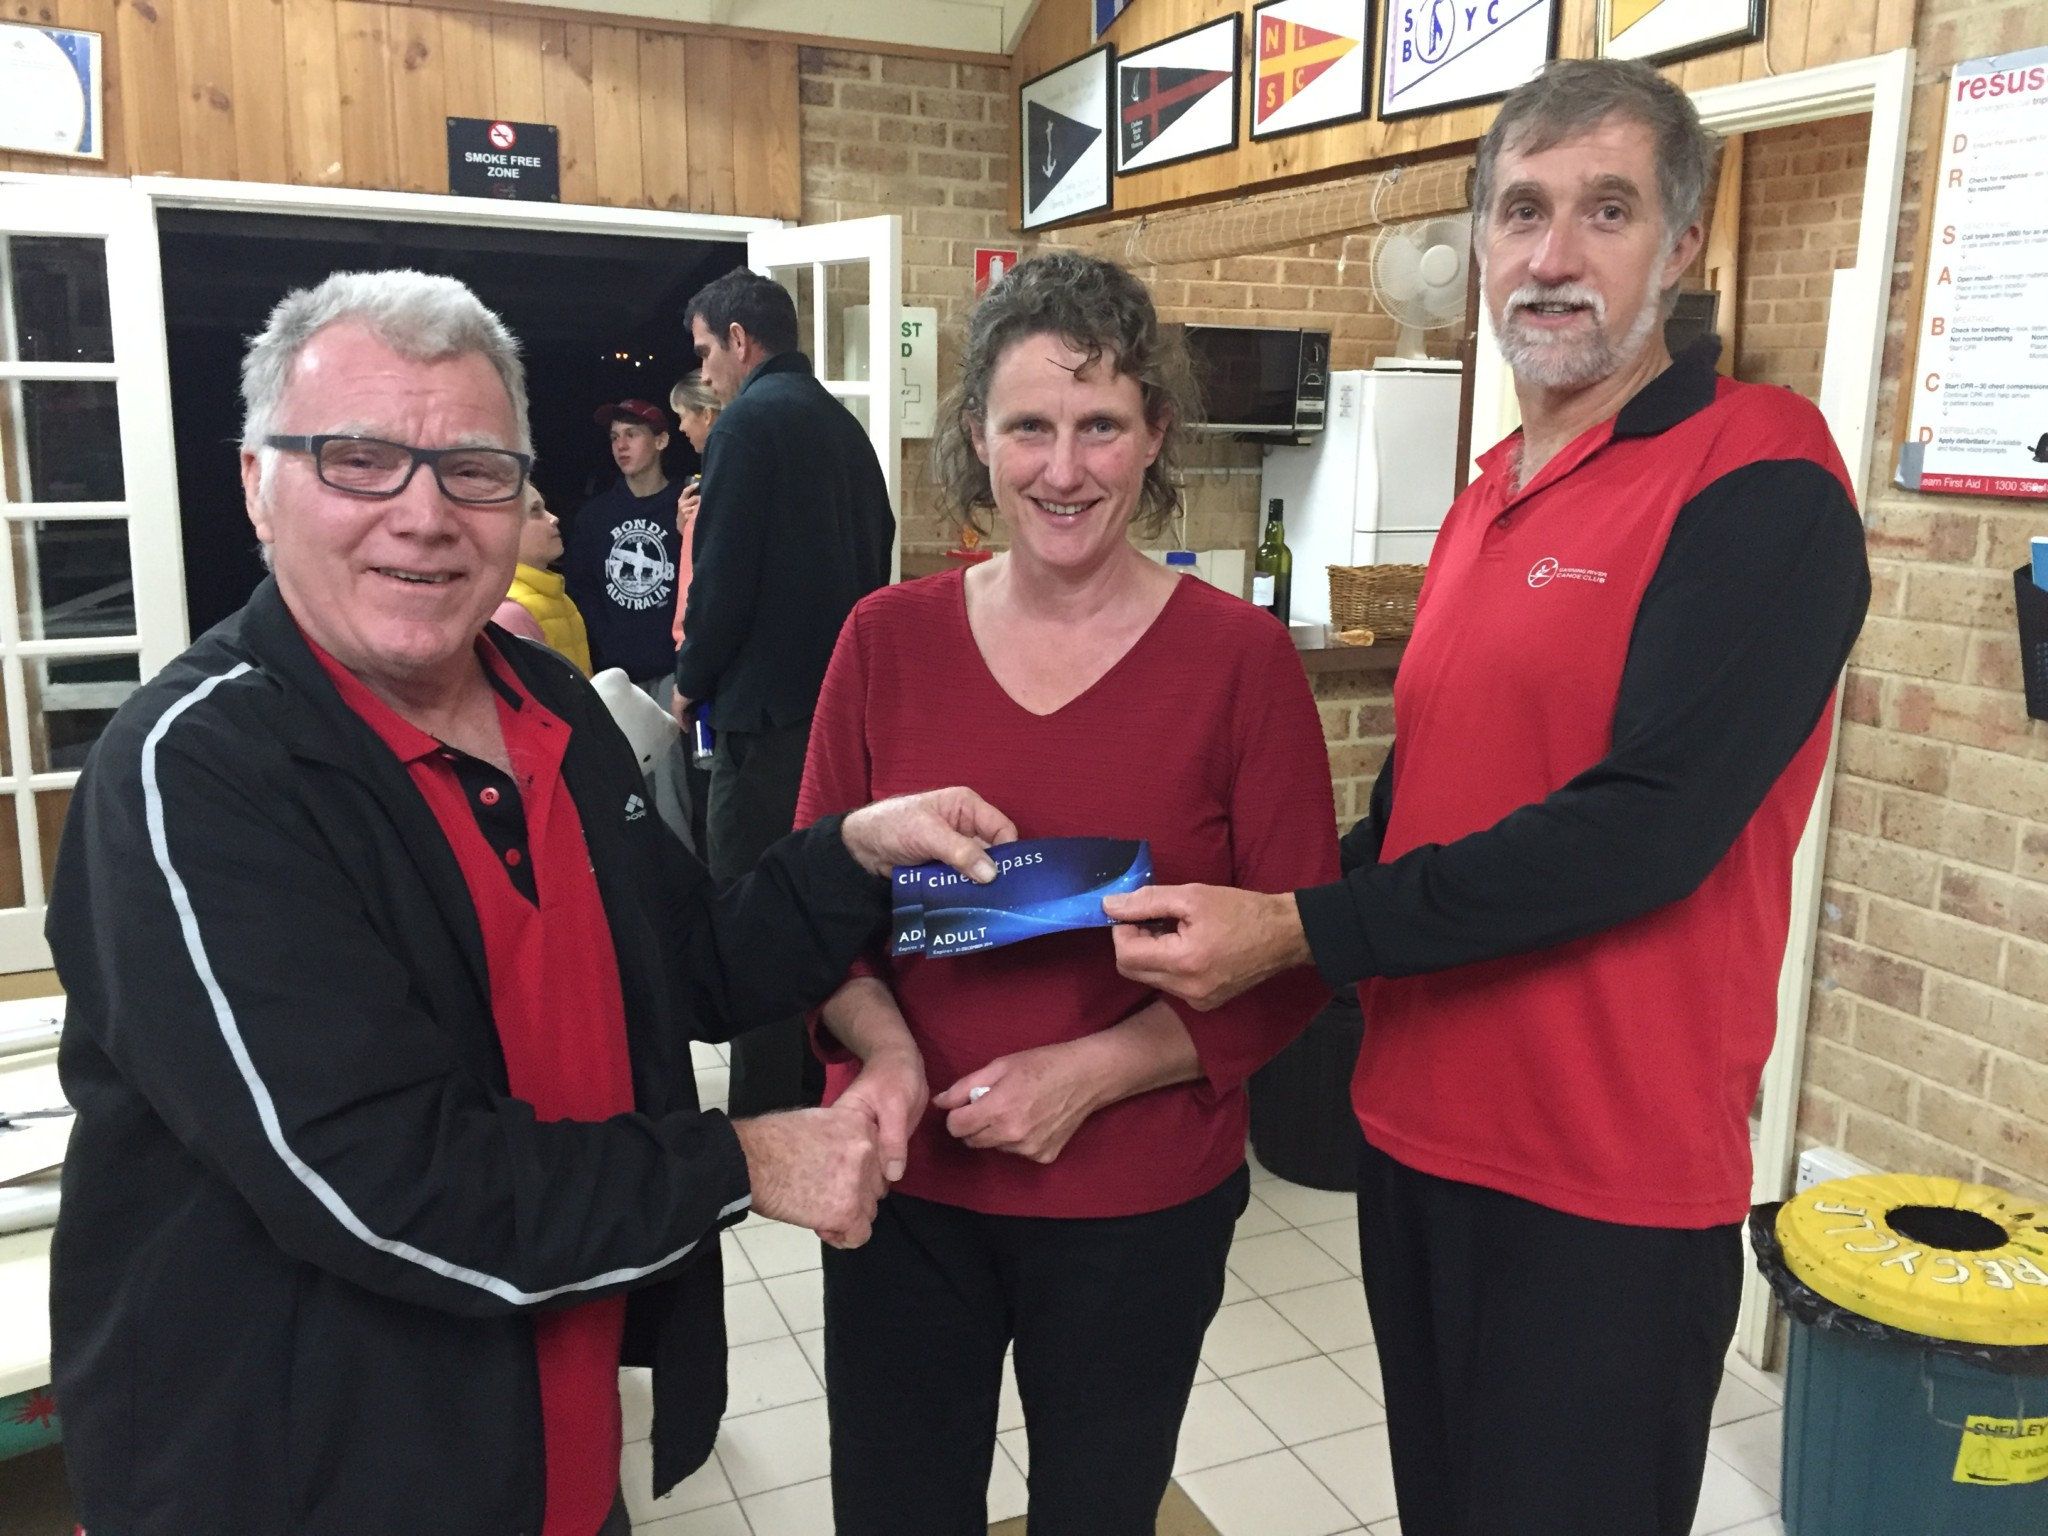 Tuesday 5th July, Club member David Gardiner presenting movie vouchers to tonights winners Steve and Cindy Coward